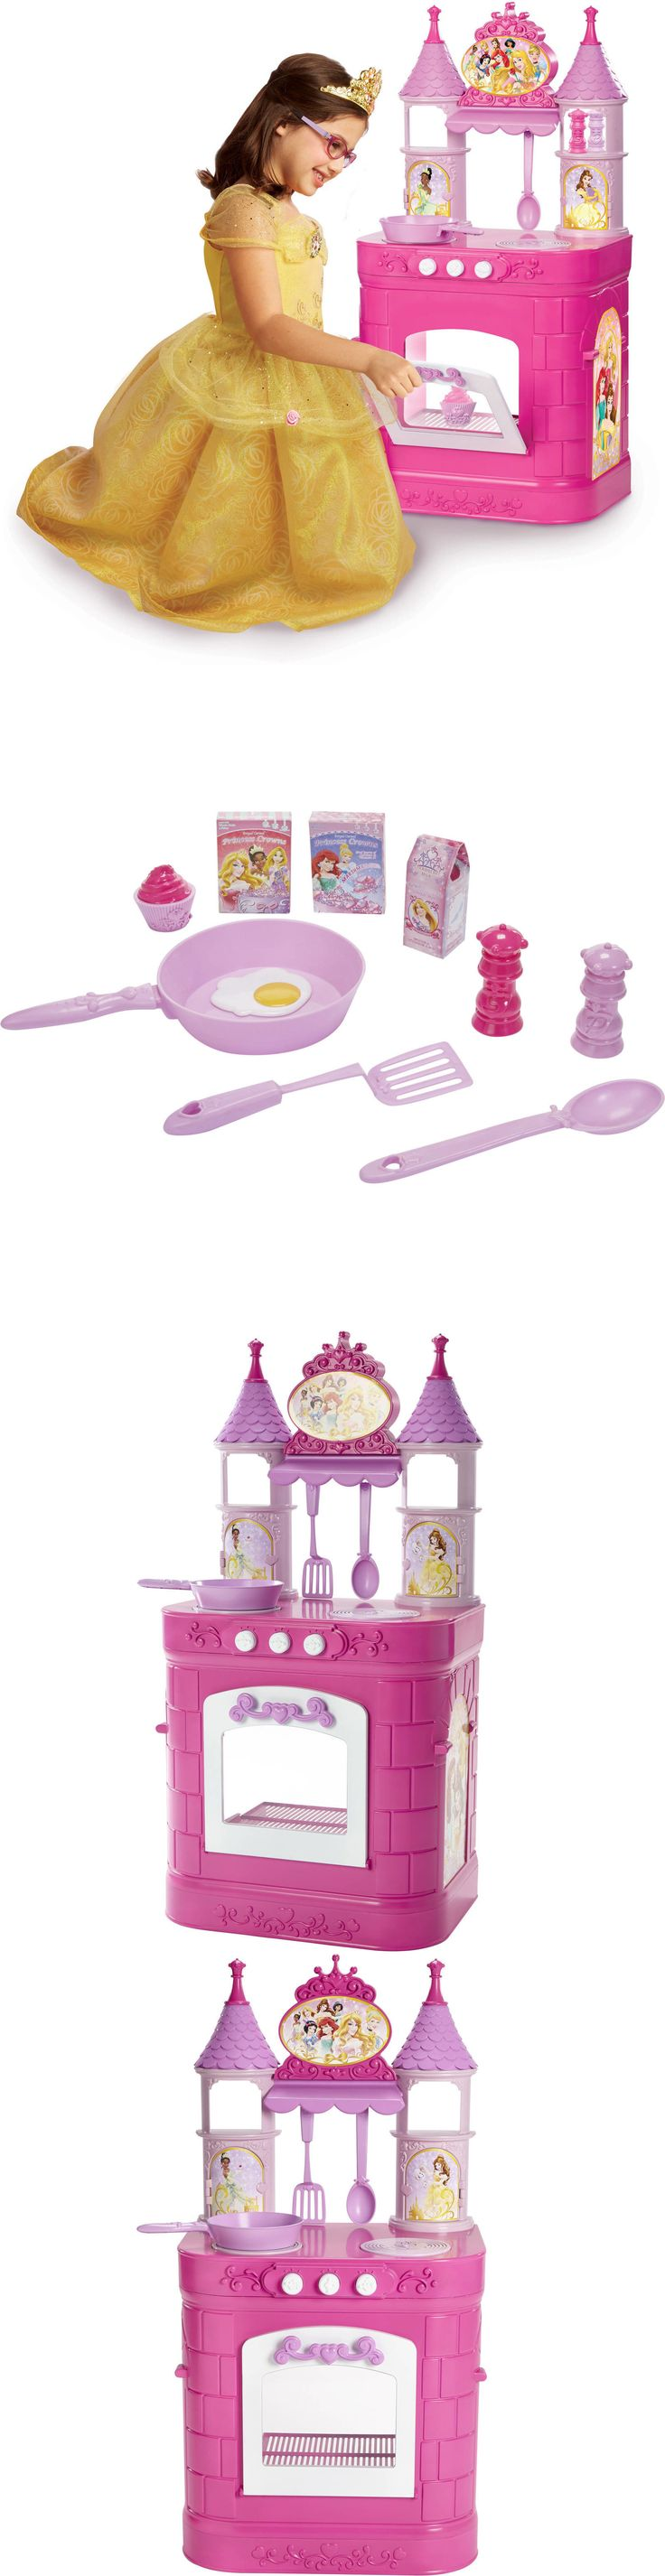 Little Mermaid 44036: Disney Princess Magical Kitchen Kids Girls Pretend Play Toy Sound Gift Pink New -> BUY IT NOW ONLY: $49 on eBay!